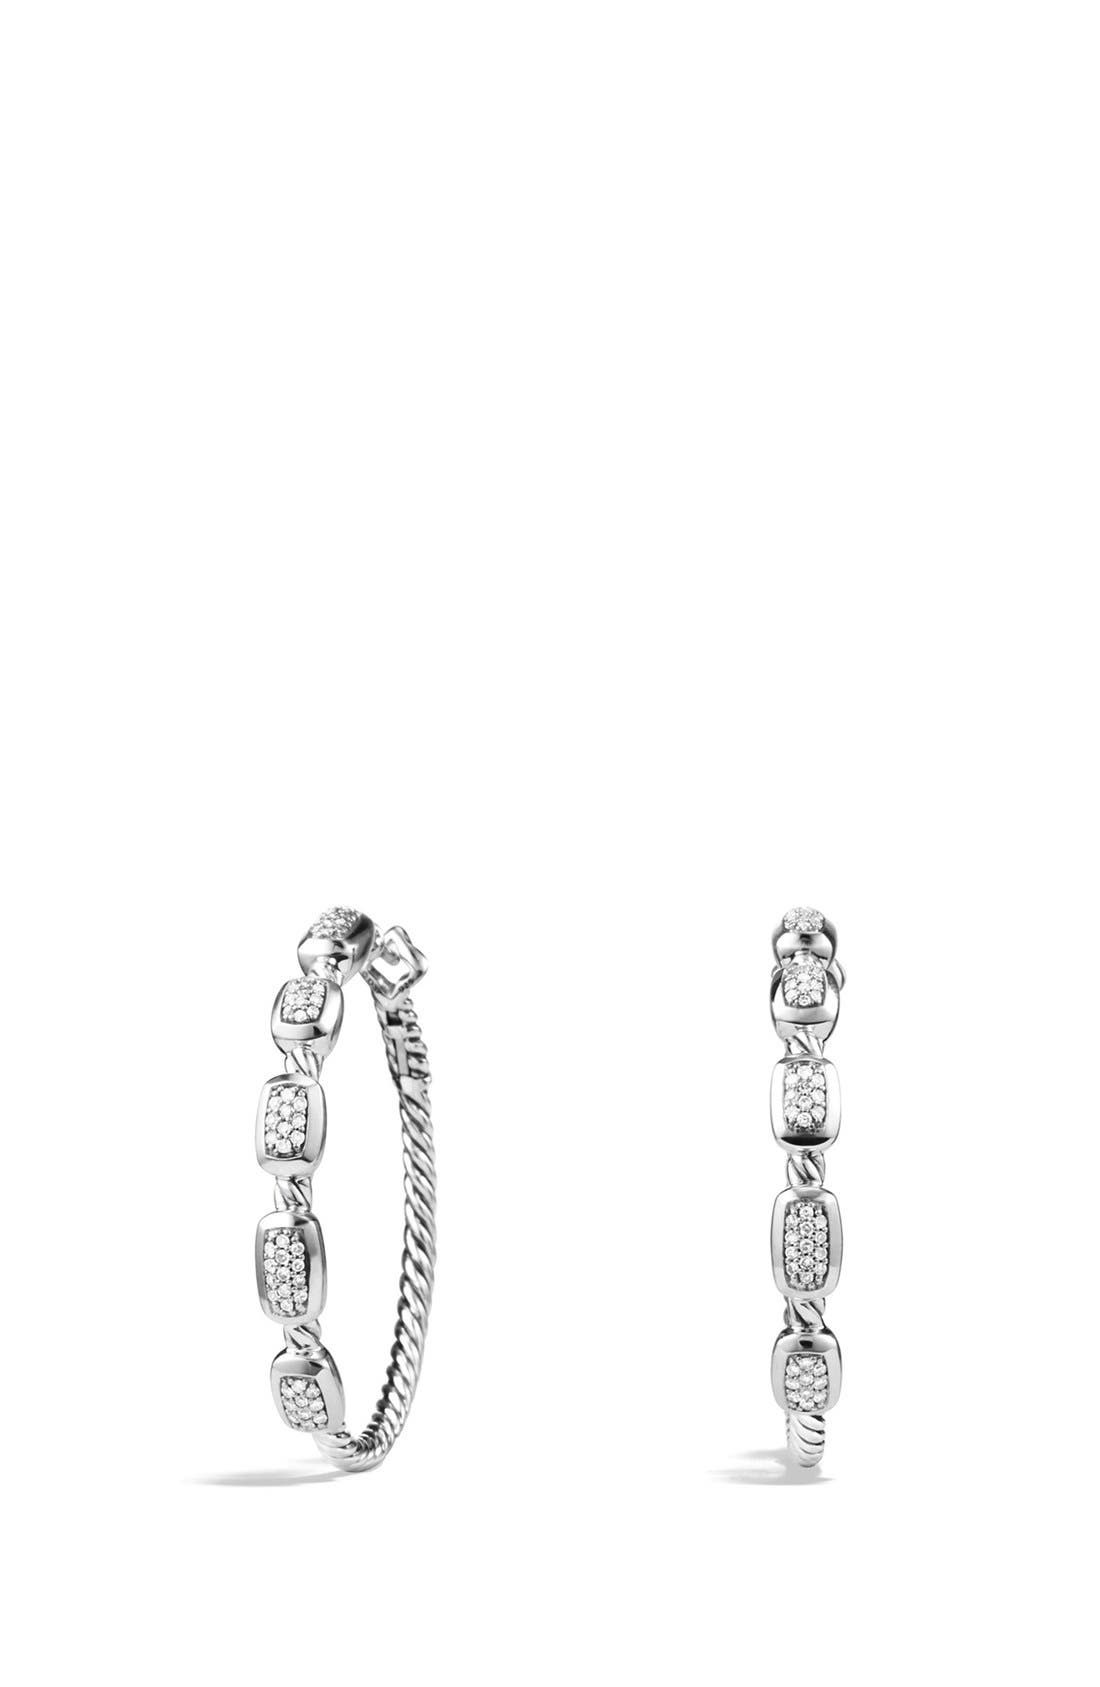 'Confetti' Hoop Earrings with Diamonds,                             Main thumbnail 1, color,                             040